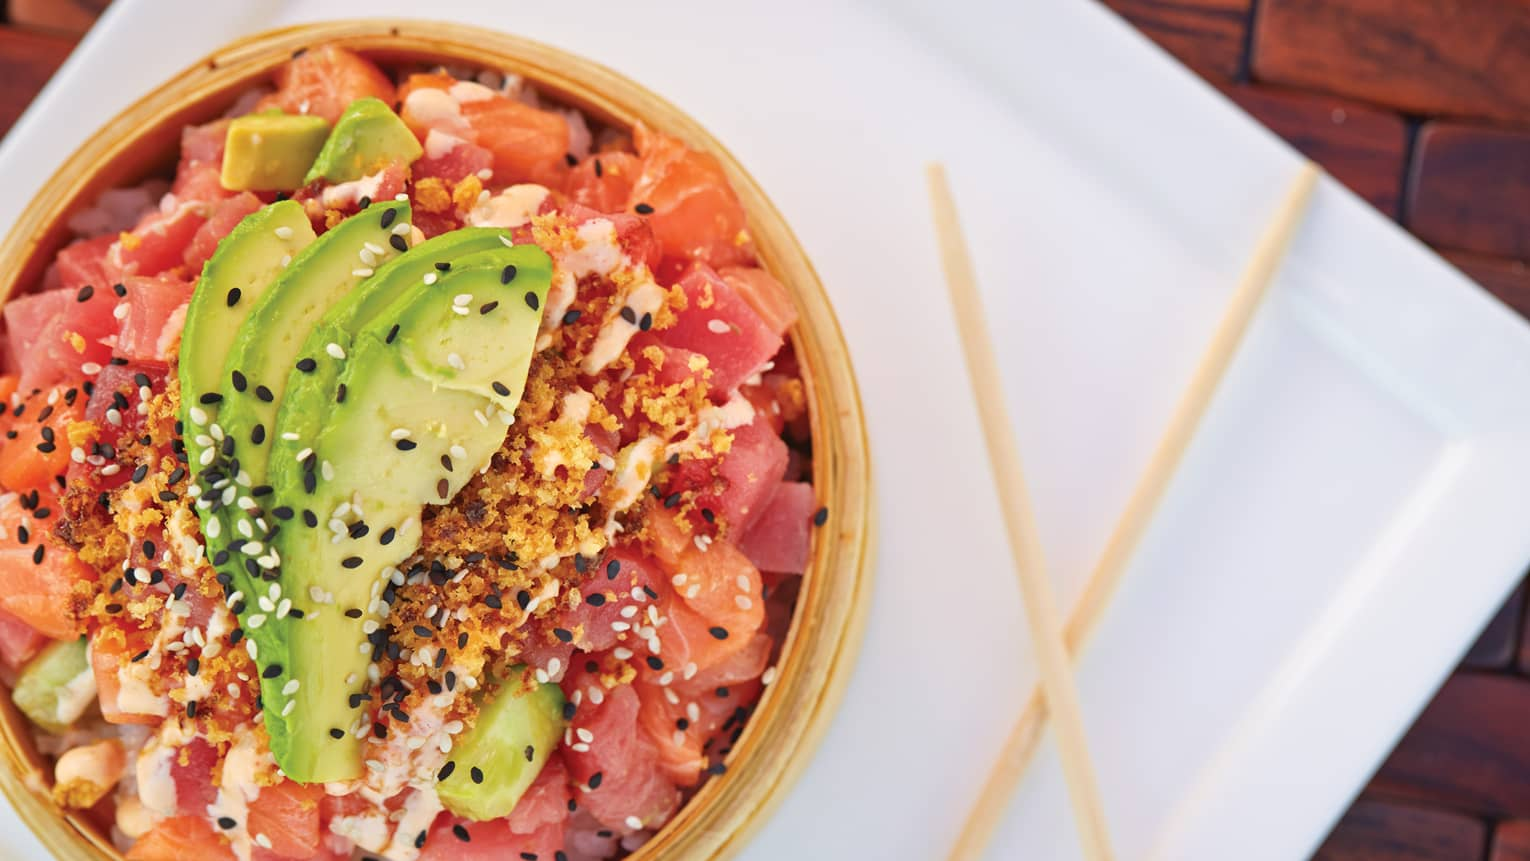 A poke bowl is topped with avocado slices and sesame seeds